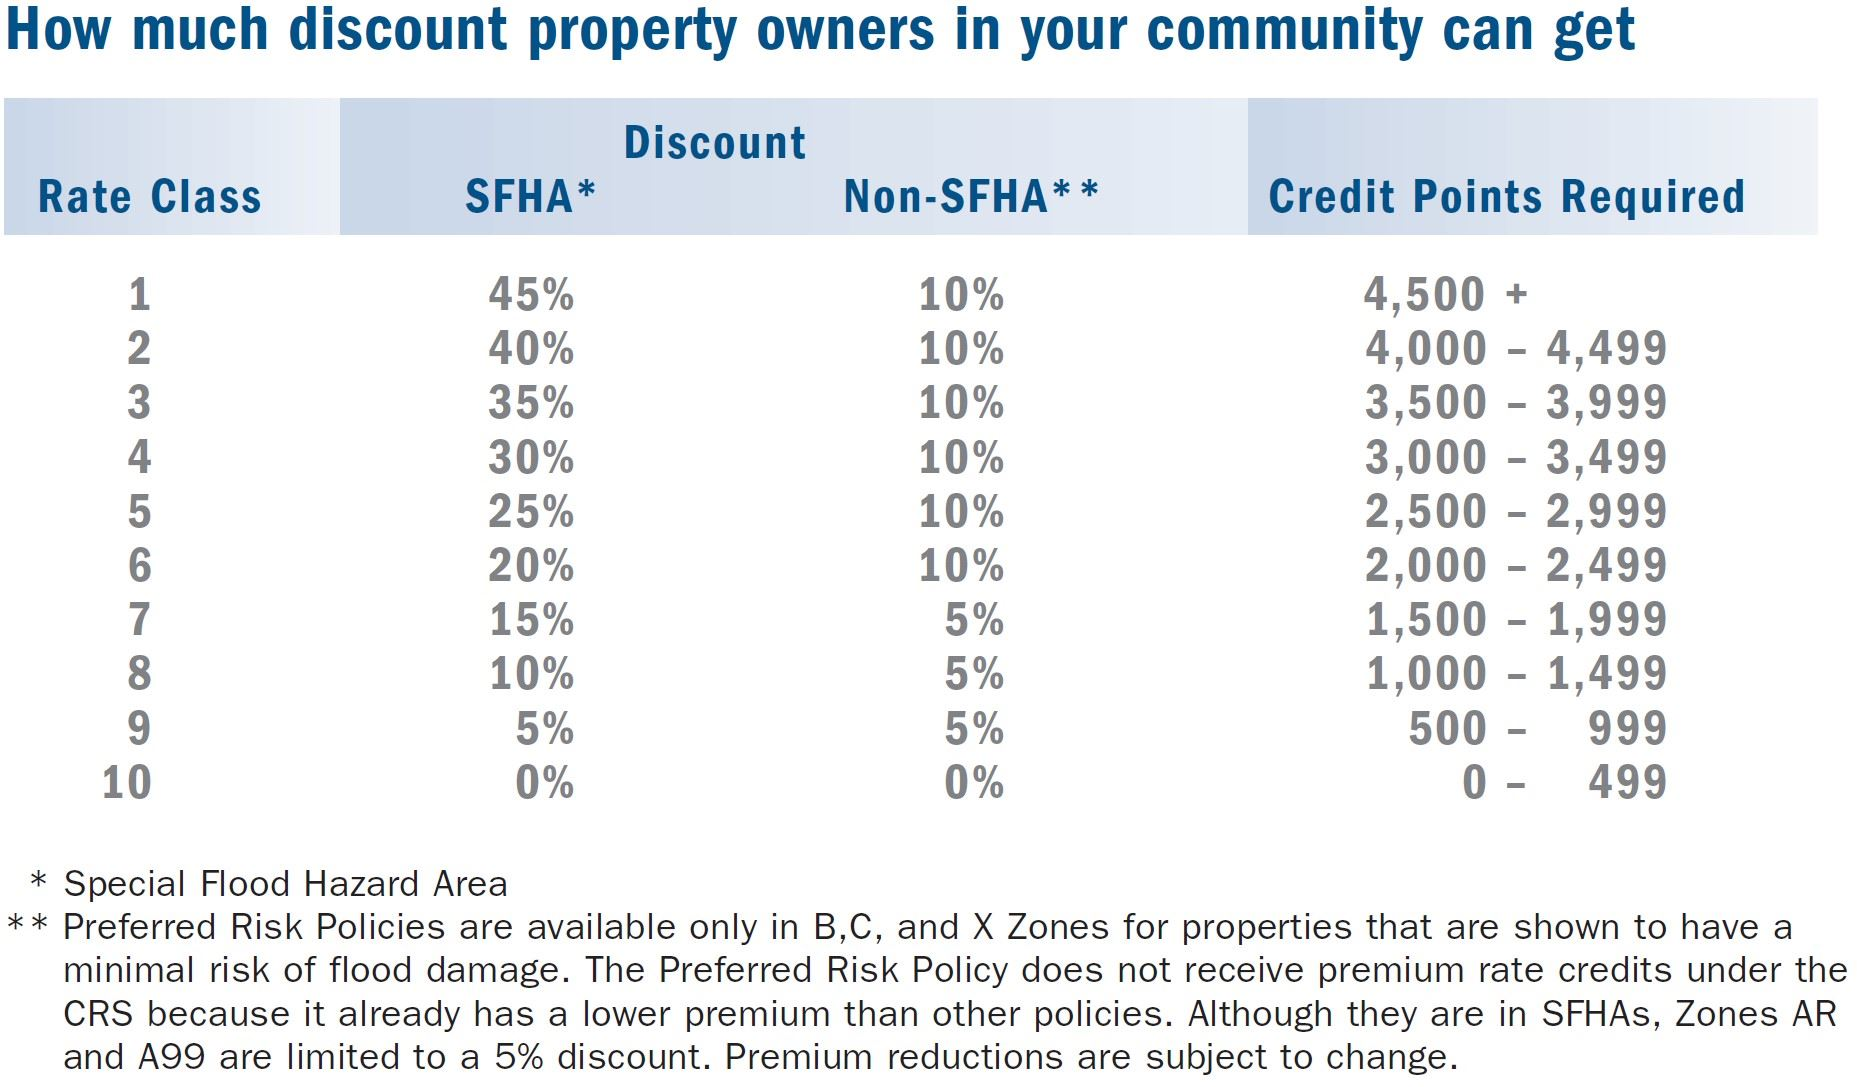 FEMA Community Rating System